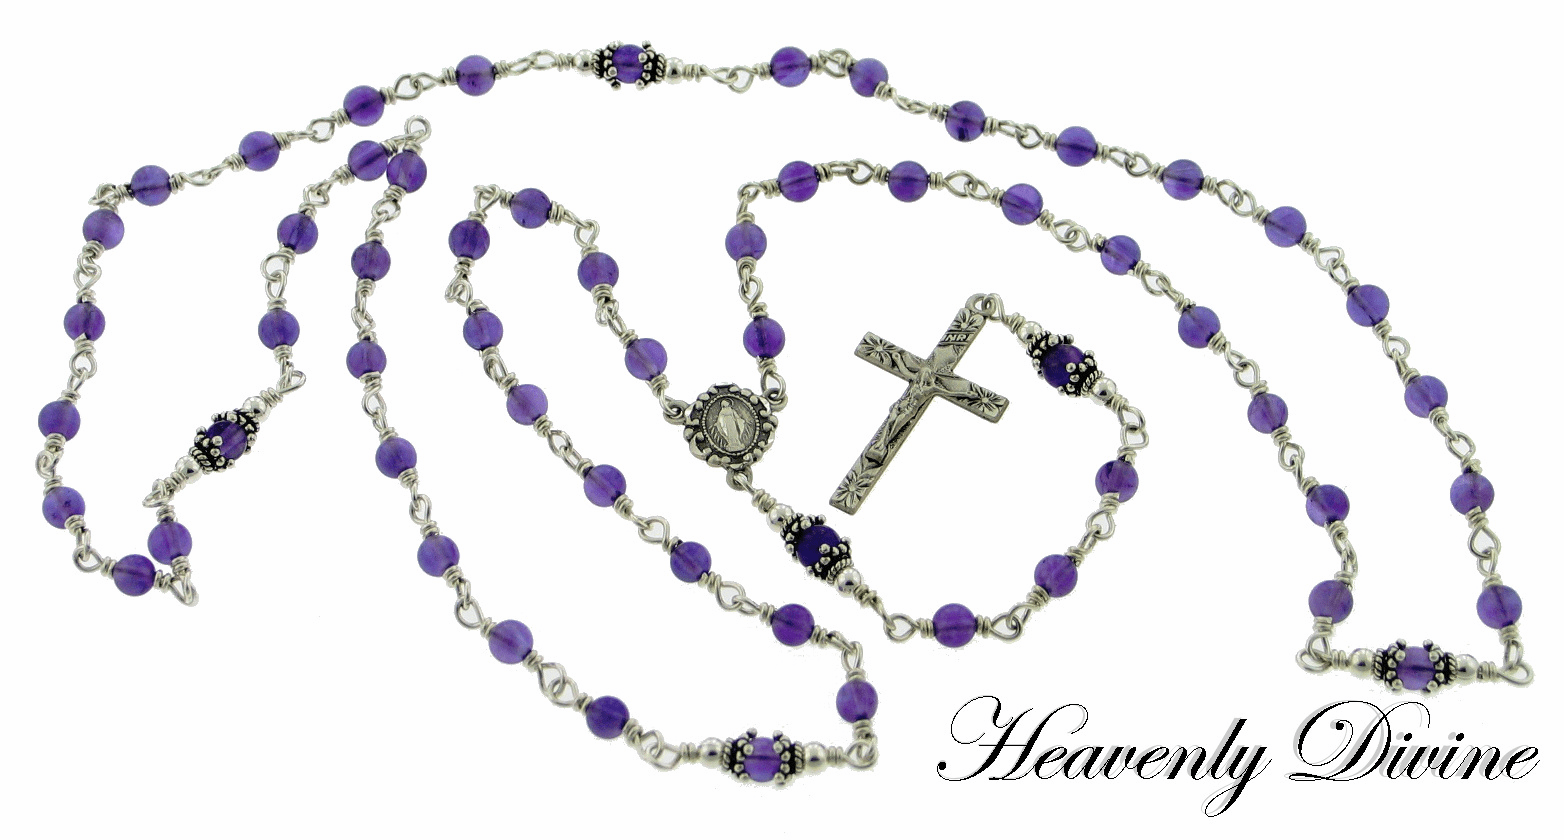 Amethyst Sterling Silver Wire Wrapped Catholic Rosary Necklace by Heavenly Divine